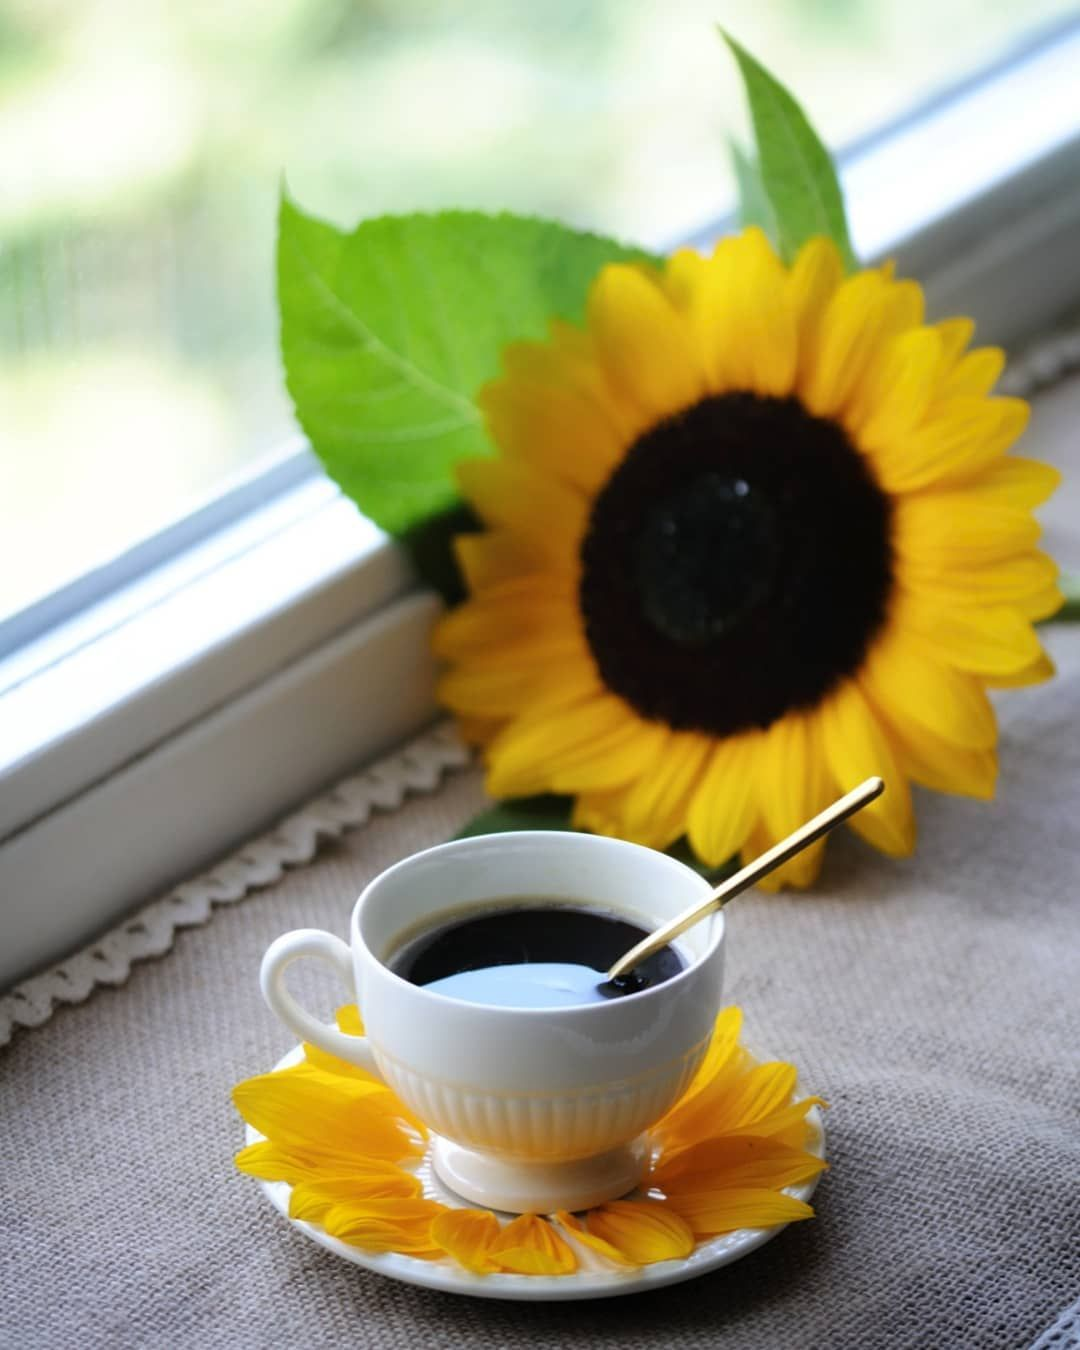 Image may contain flower and plant good morning coffee